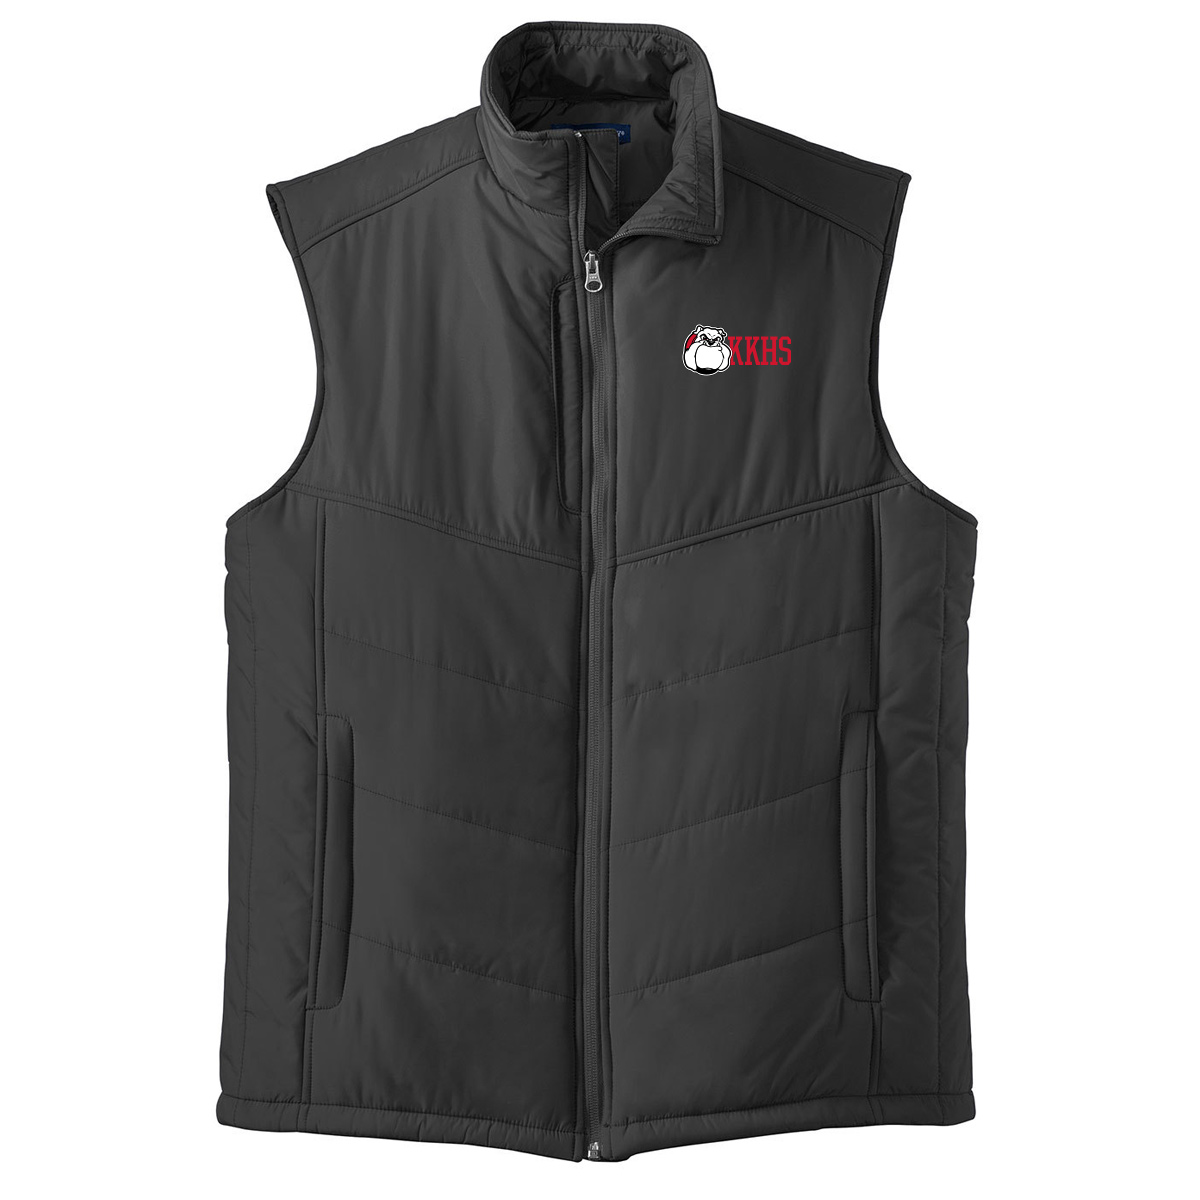 Kennedy Krieger High School Puffy Vest - Black